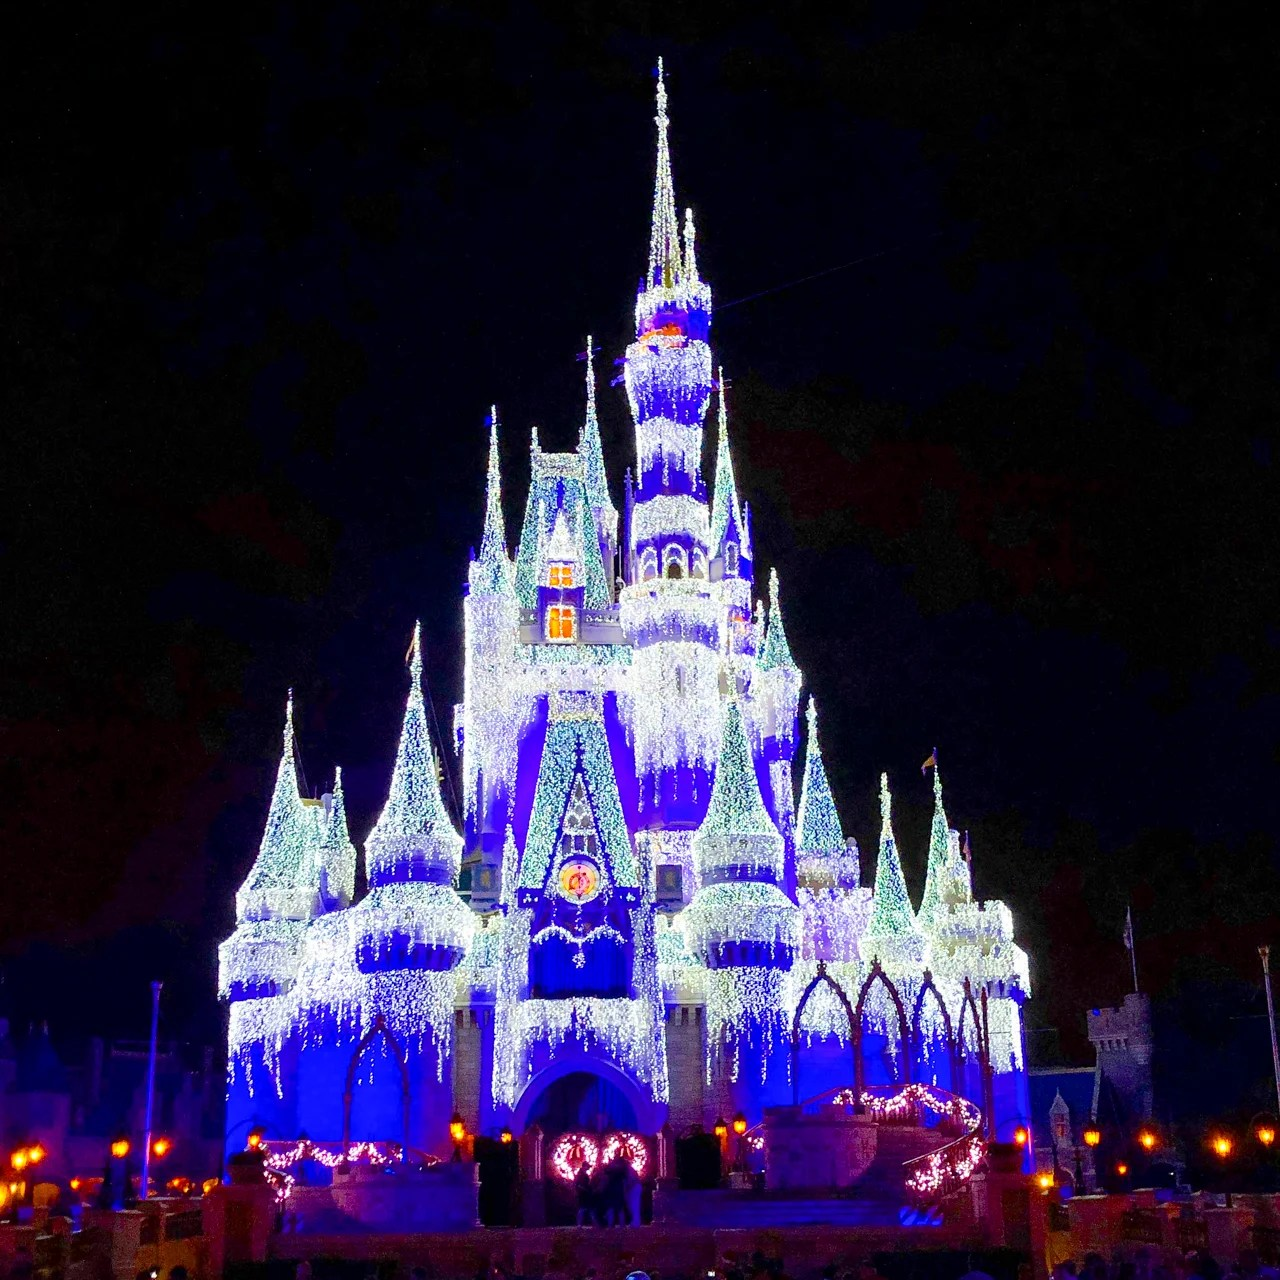 You can once again book Disney tickets with Ultimate Rewards, but you probably shouldn't